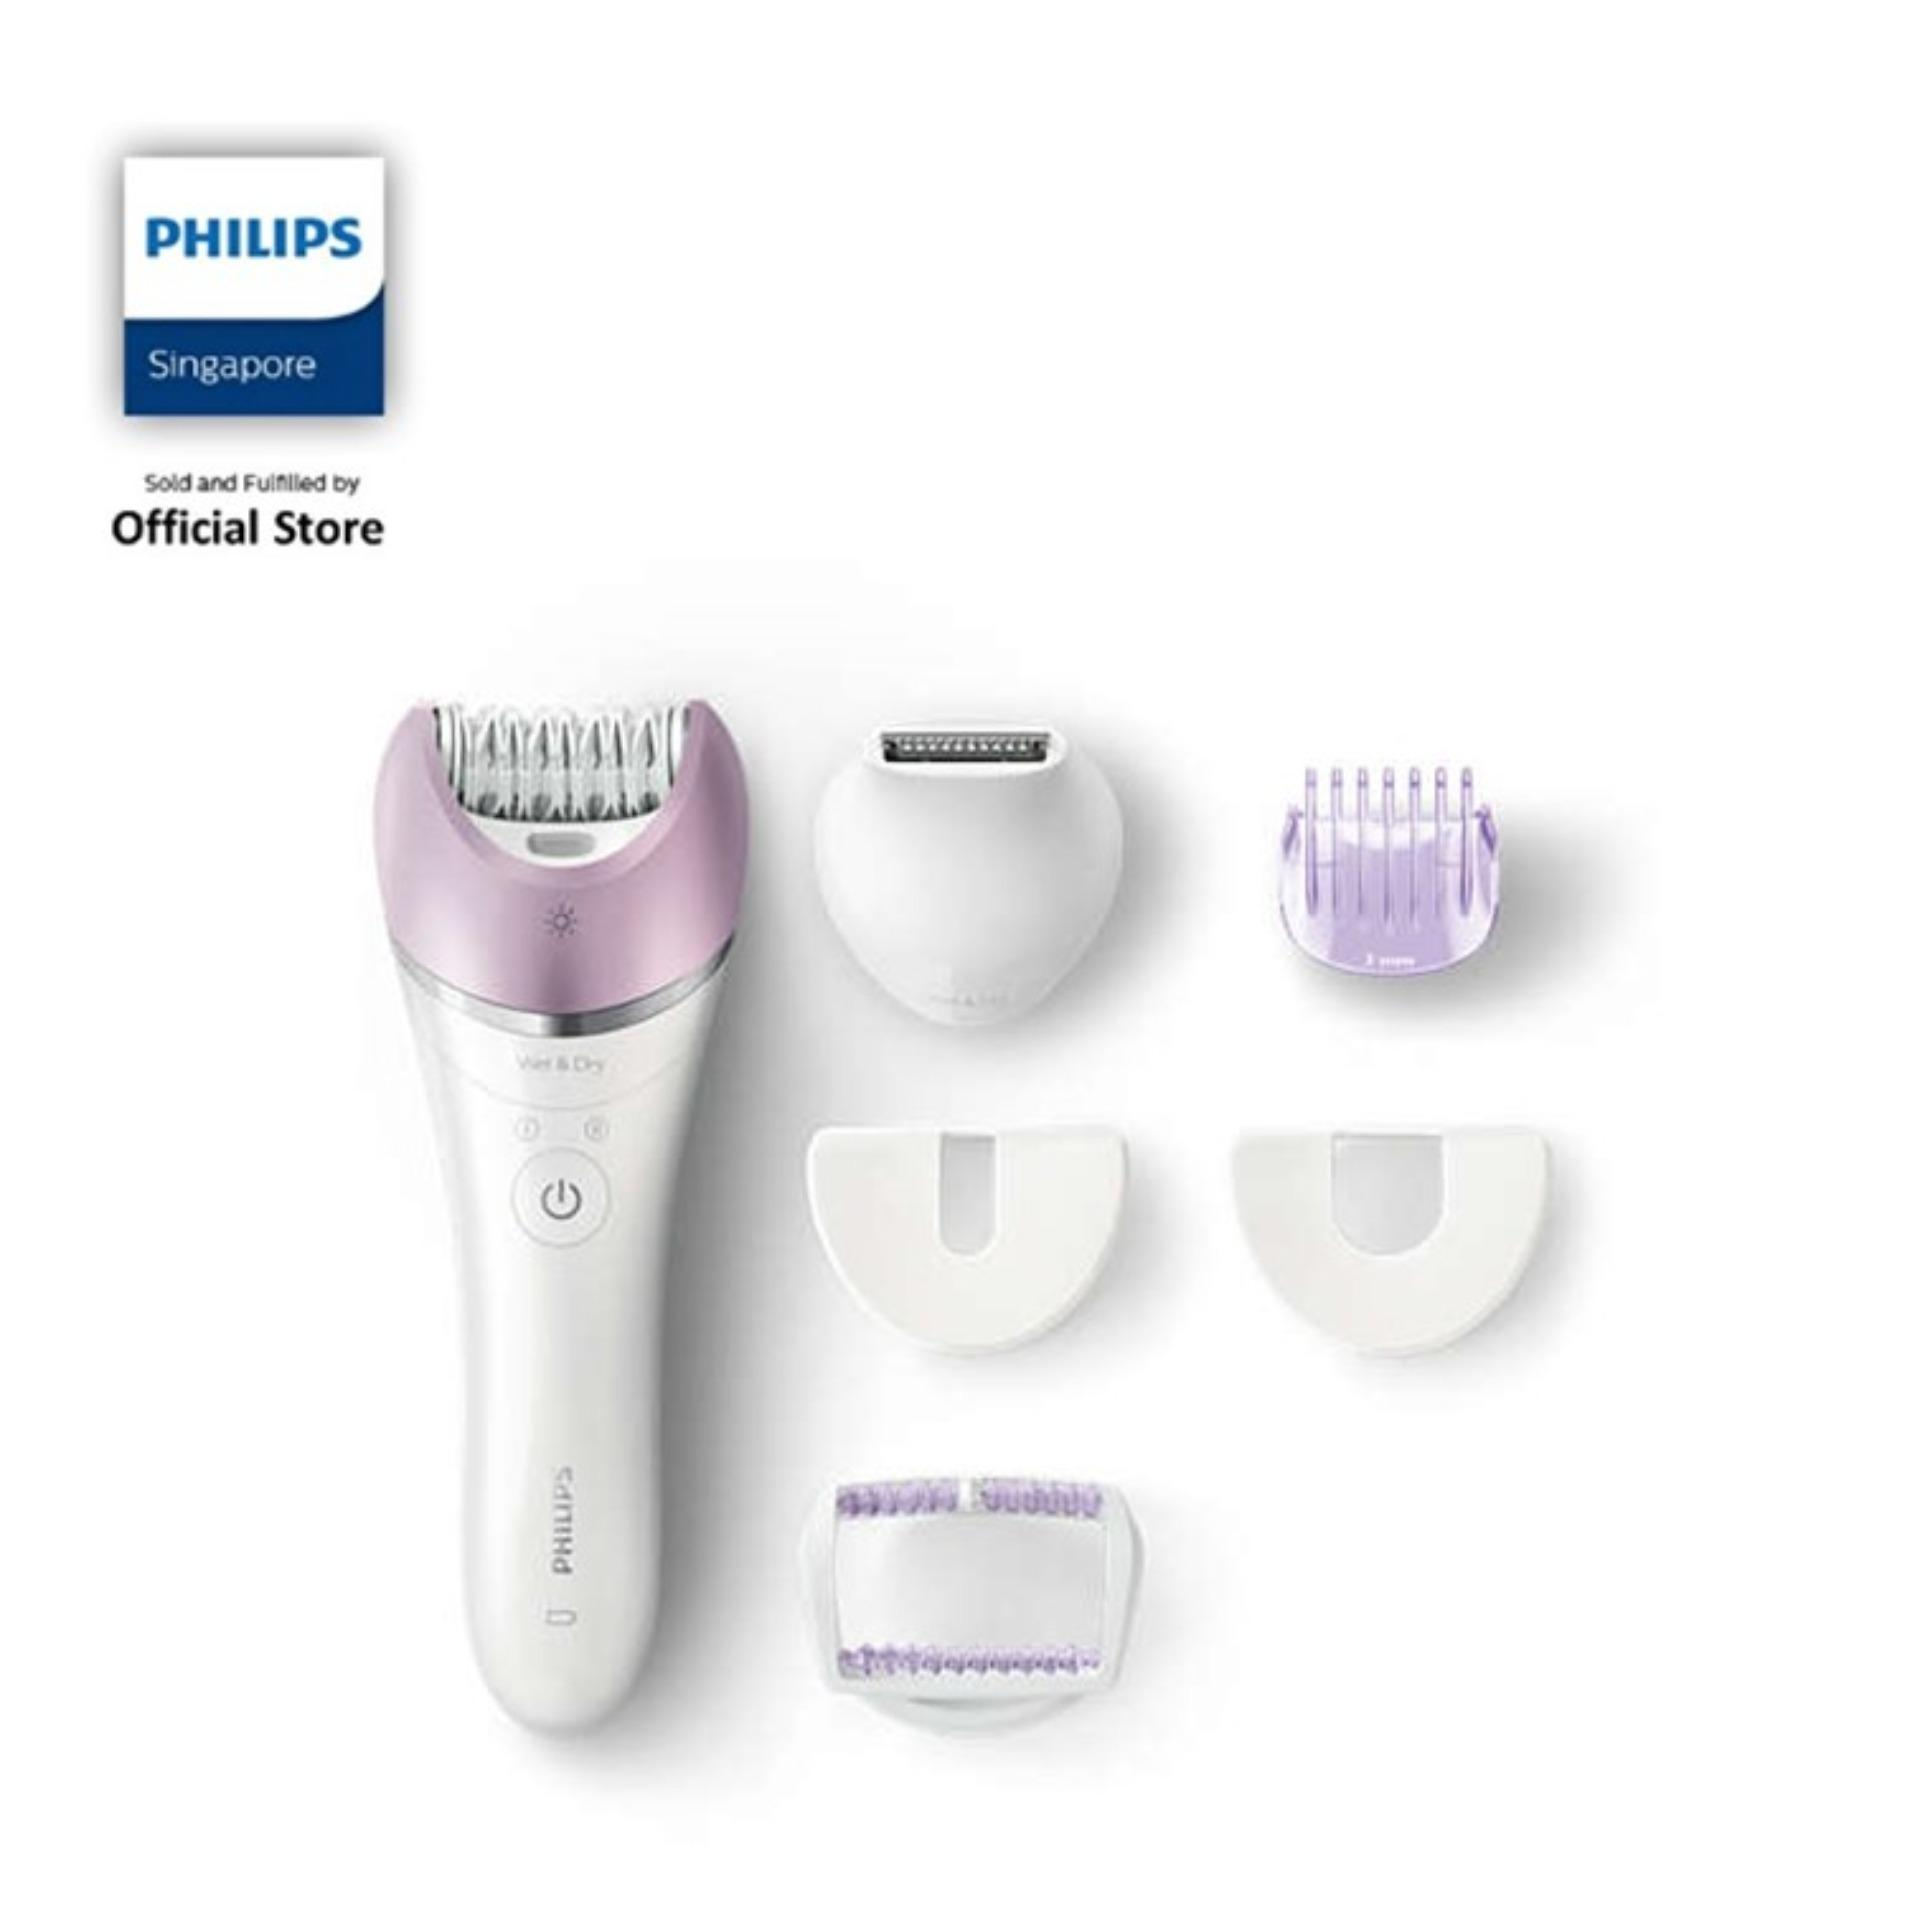 Philips Satinelle Advanced: Wet & Dry Epilator - Bre632/00 By Philips Official Store Sg.